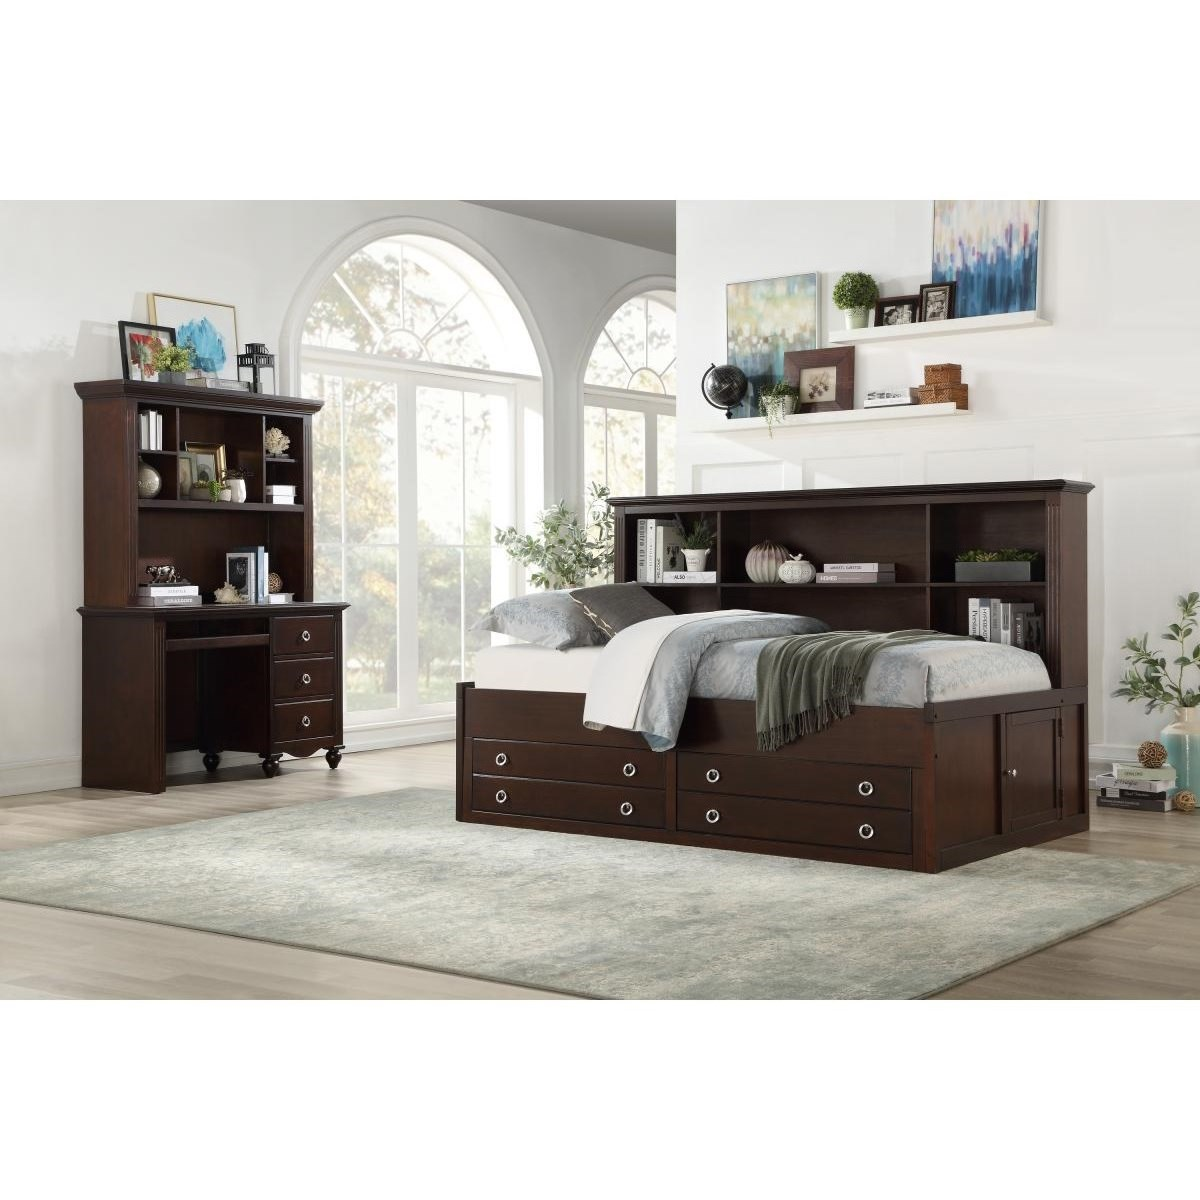 2058C Twin Bedroom Group by Homelegance at Rooms for Less